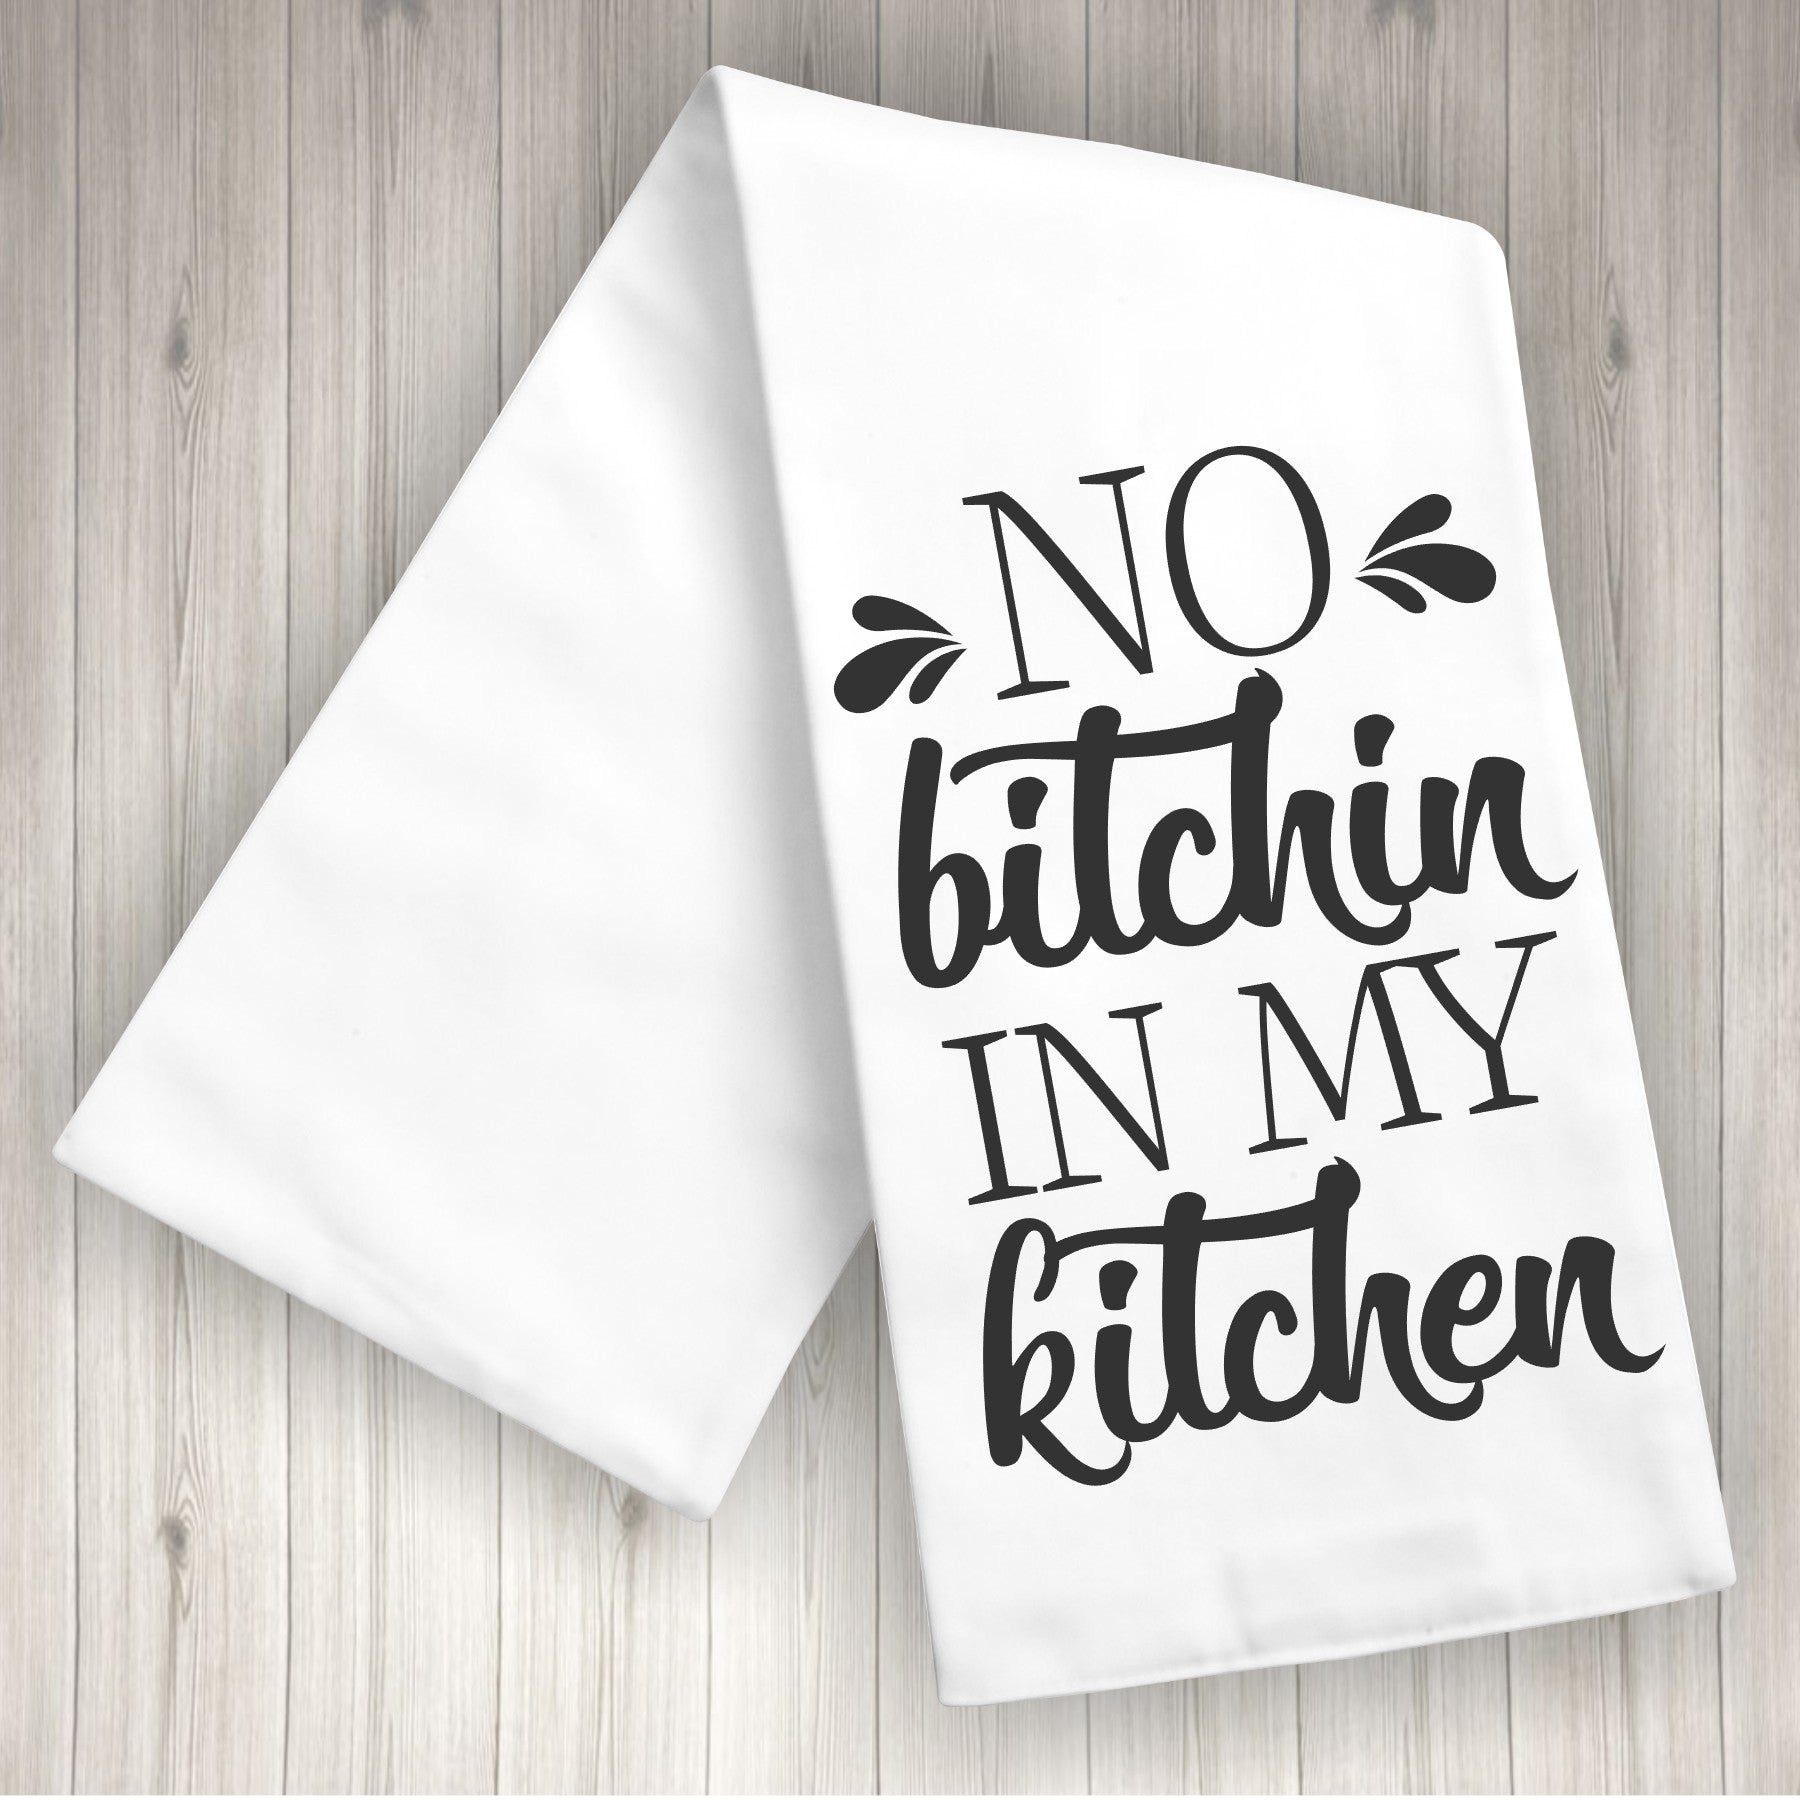 NO BITCHIN IN MY KITCHEN Kitchen Towel - Flour Sack Towel/Tea Towel